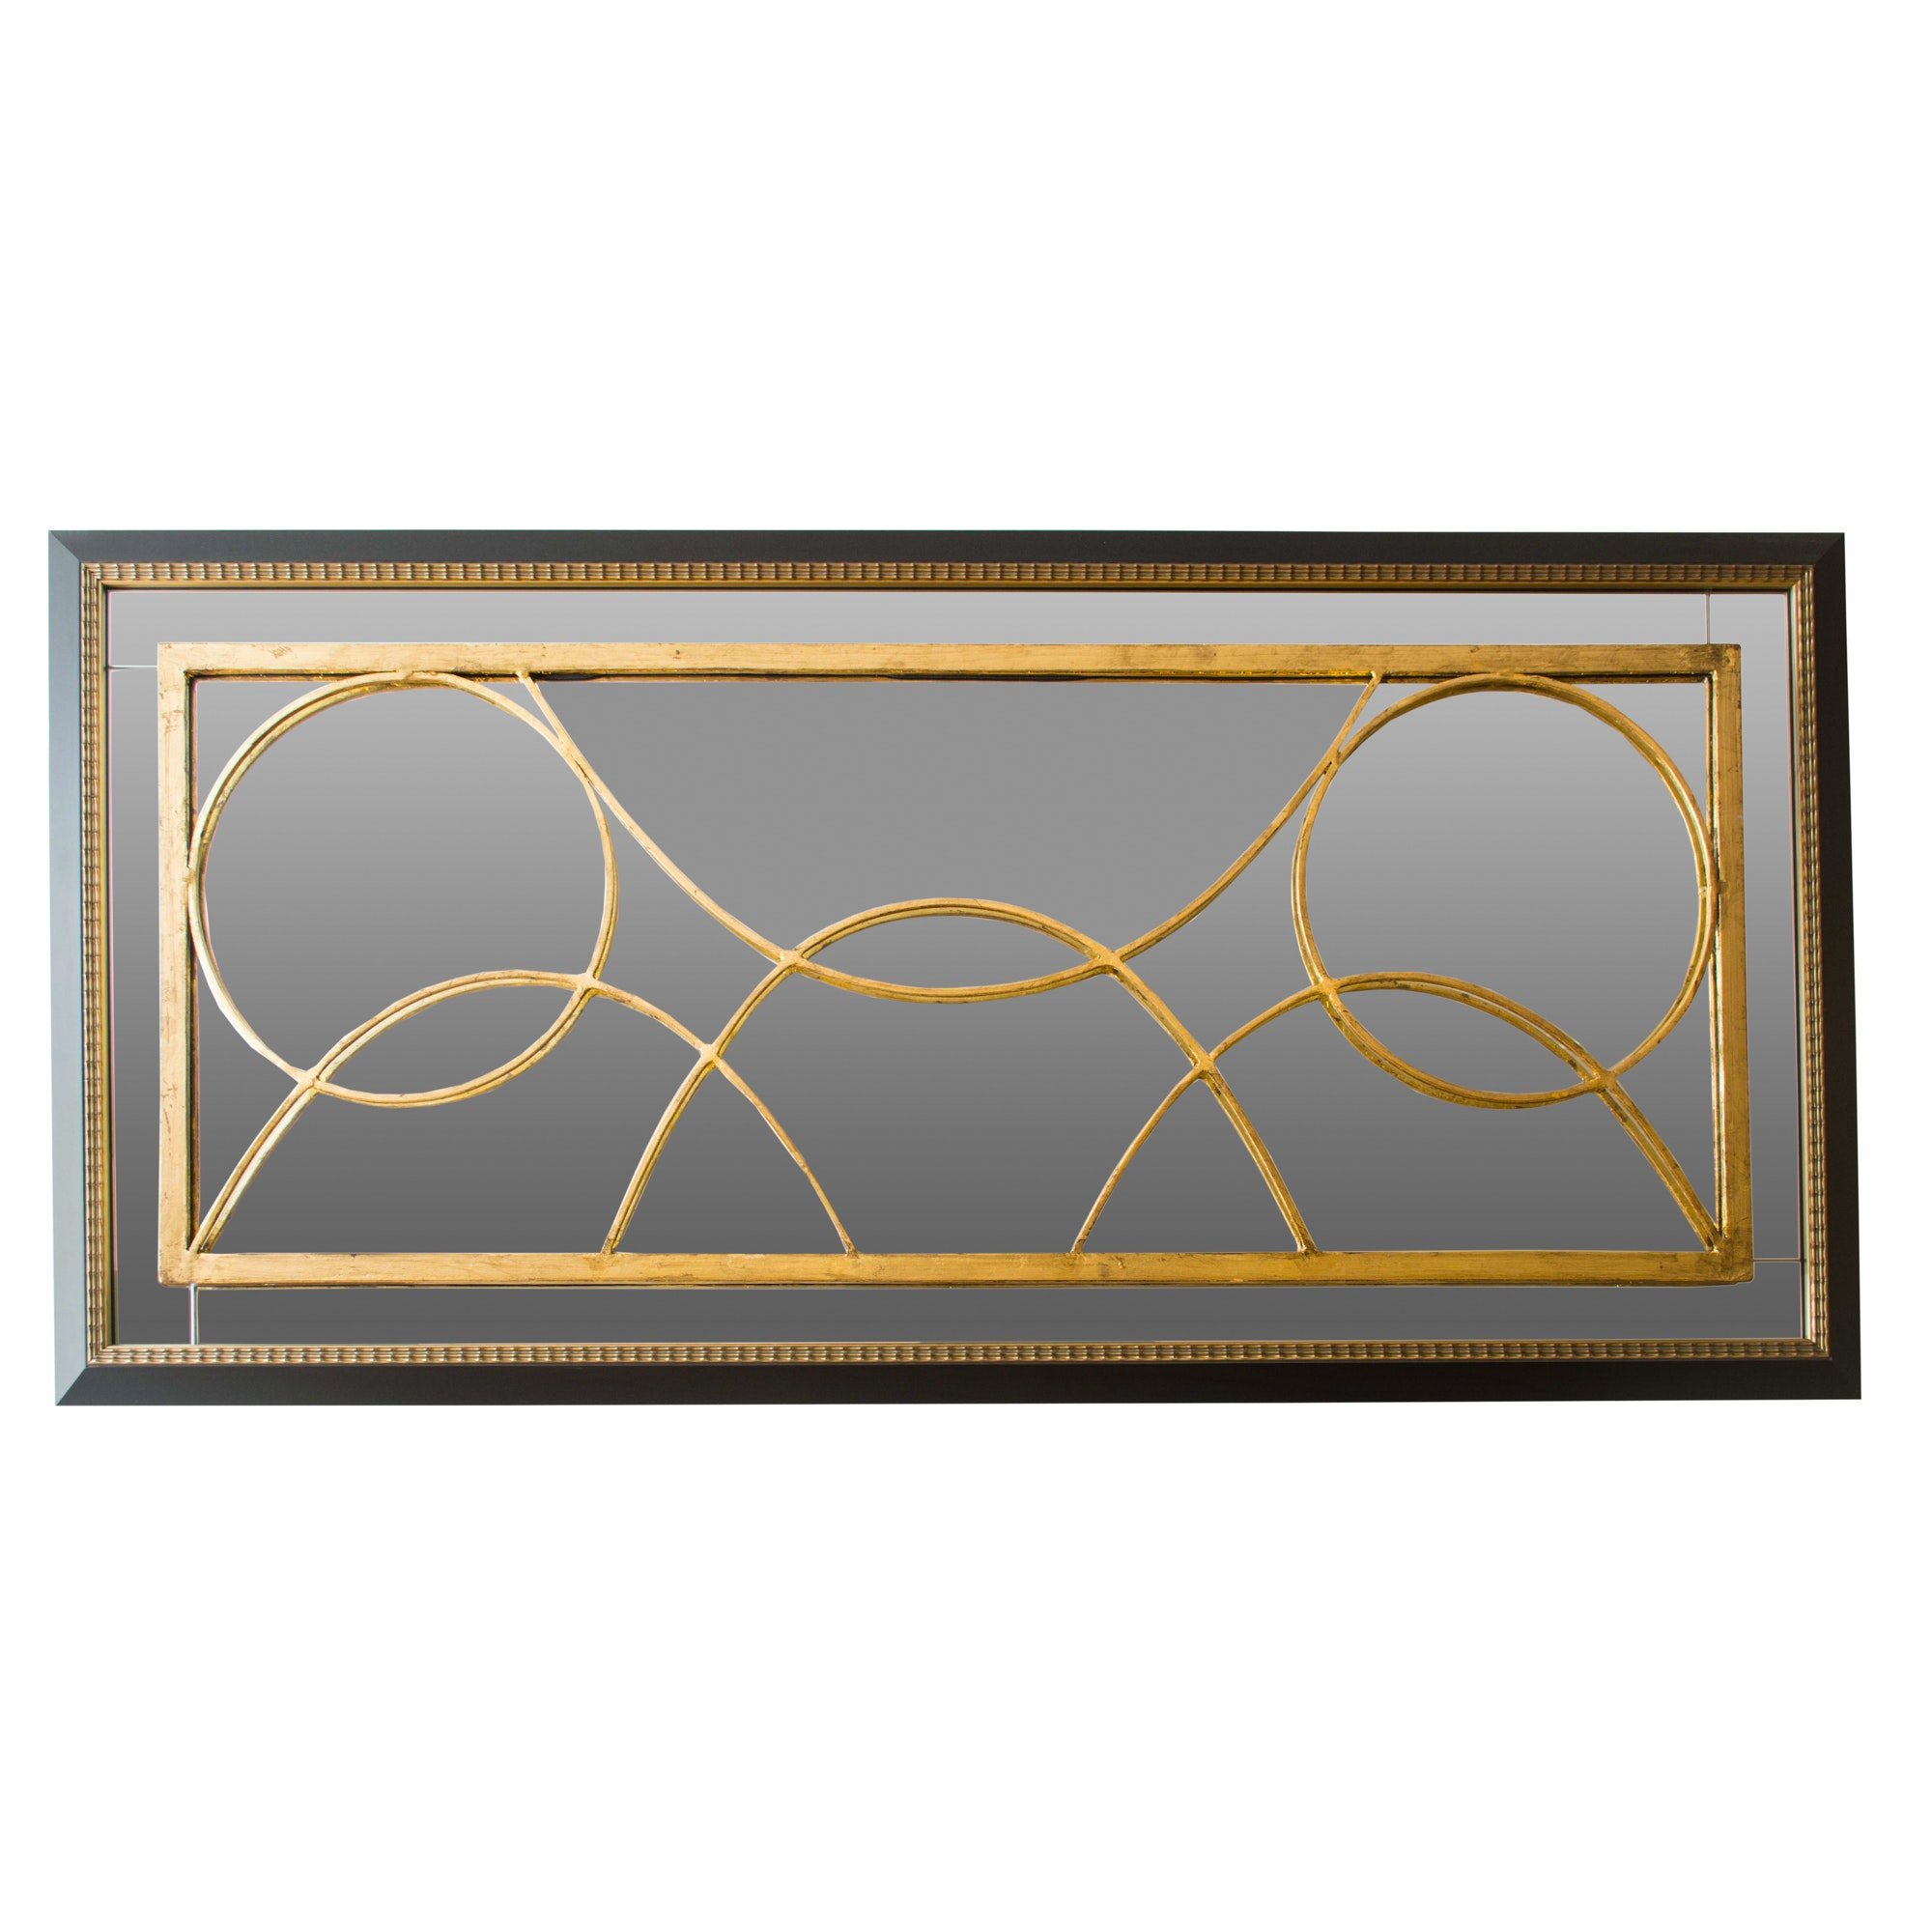 Contemporary Black and Gold Tone Geometric Frame Wall Mirror